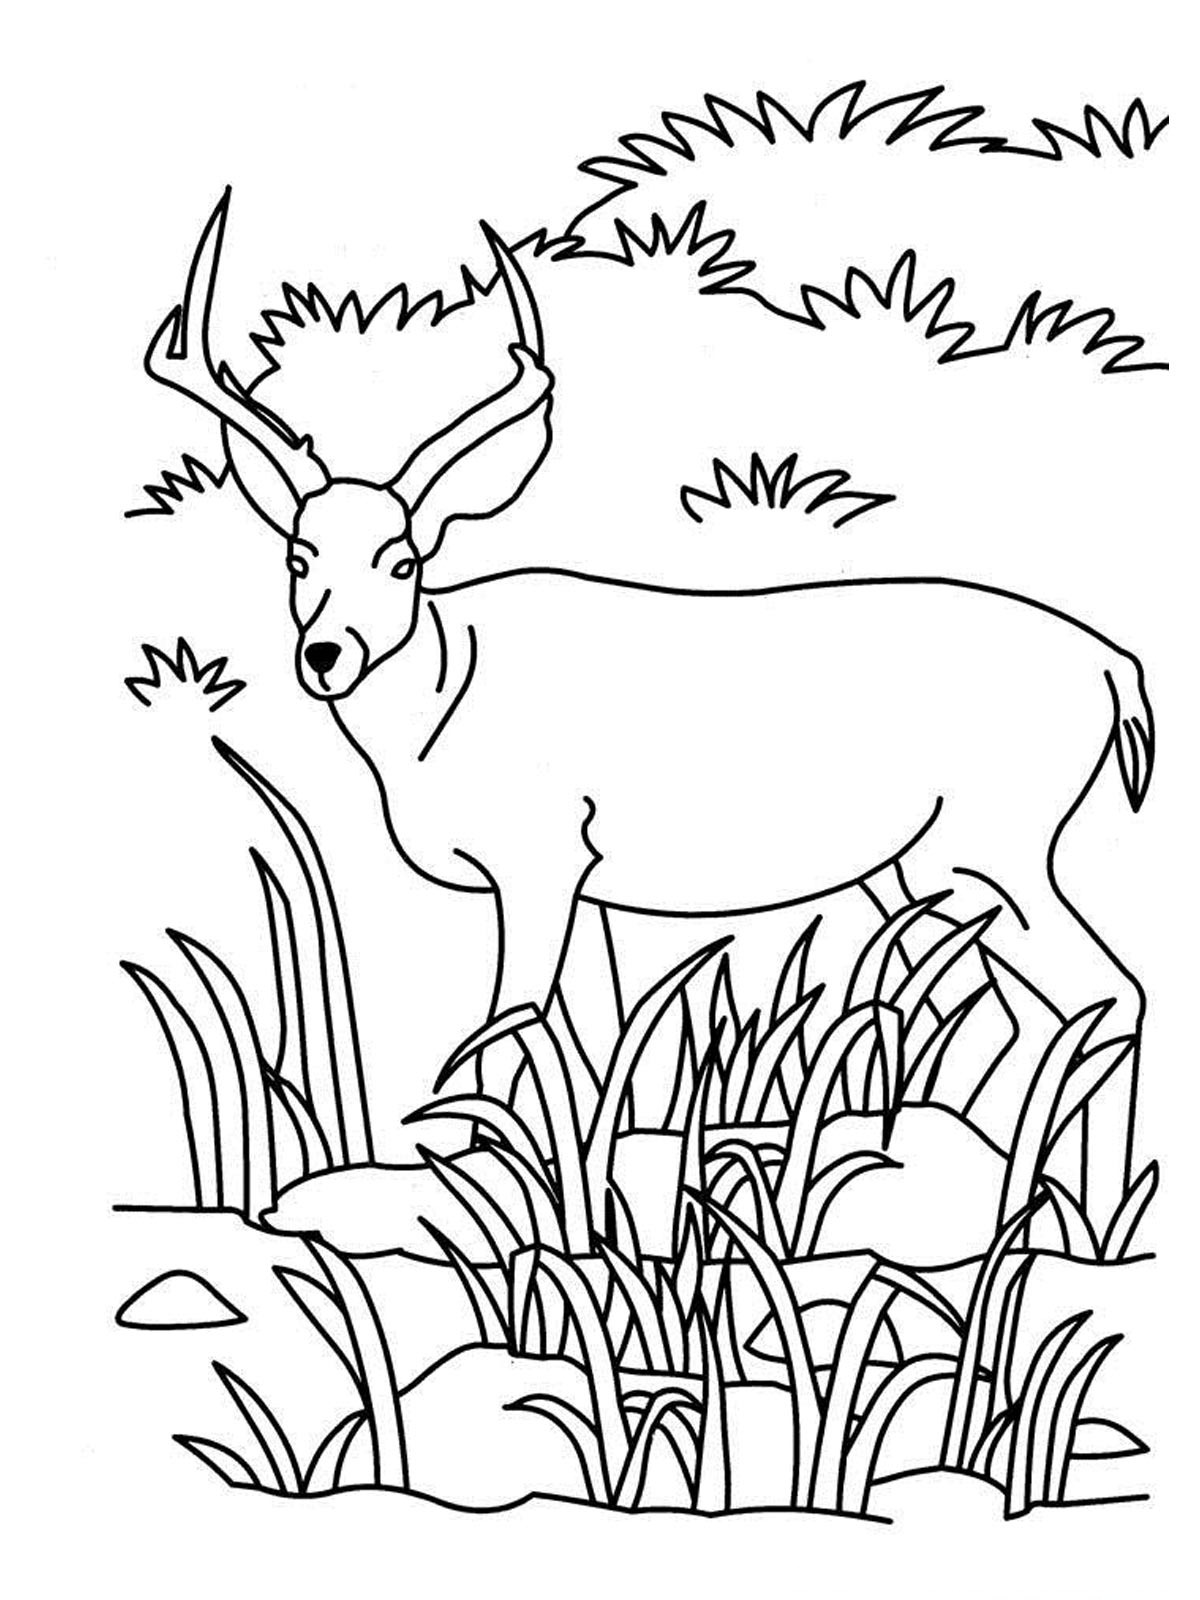 antelope-colouring-page